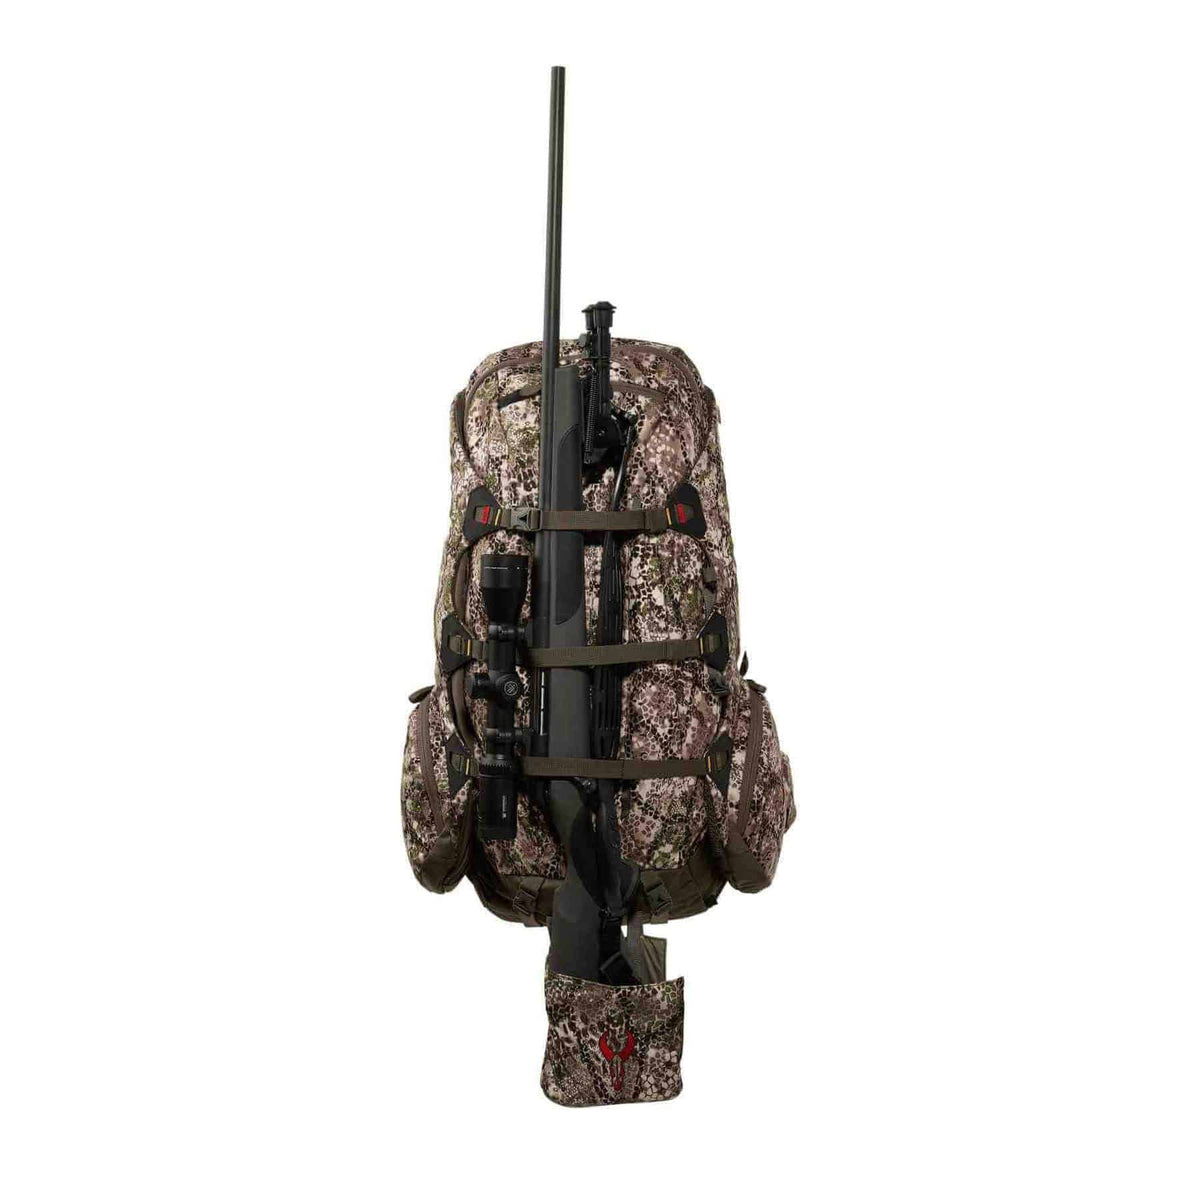 Badlands Packs 2200 Hunting Backpack 2020 Model Approach Camo Back Gun Boot